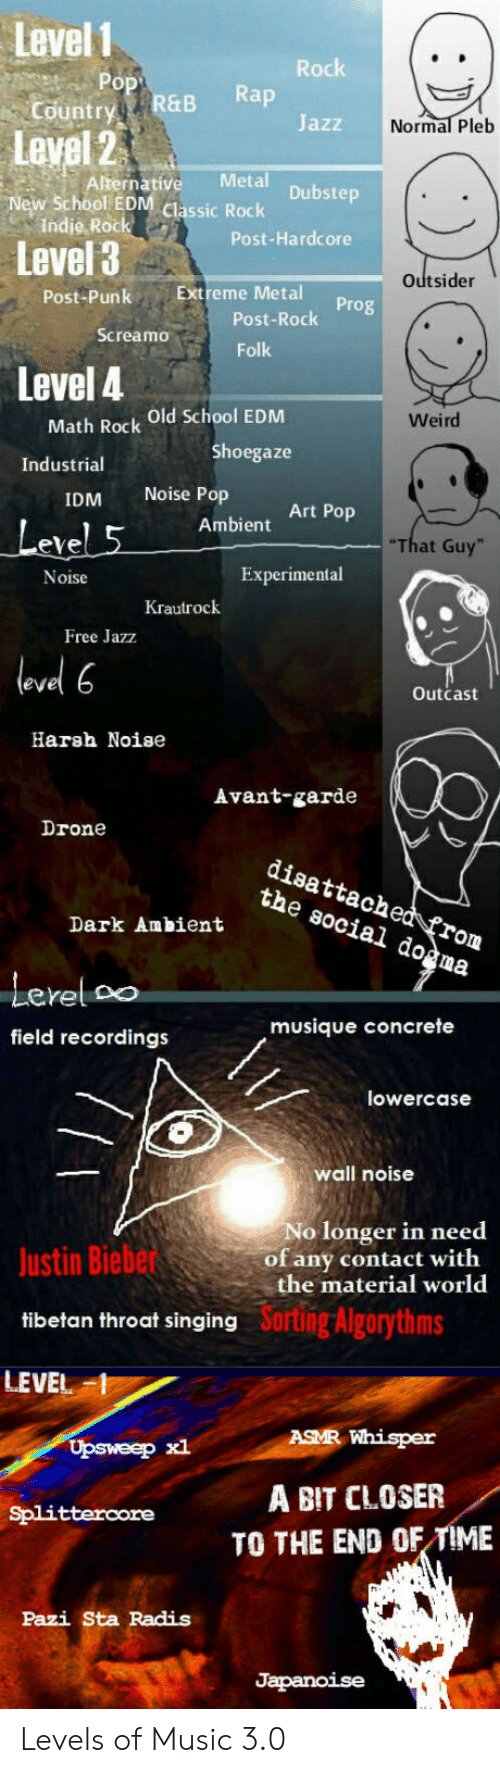 Drone, Music, and Pop: Level 1  Country  Level 2  New School EON cassi Rock  Rachk  ry R&B Rap  Jazz  Normal Pleb  Alternative Metal  Indie Rock  Level 3  Post-Hardcore  Outsider  Post-PunkExtreme Metal  Post-Rock  Folk  Screamo  Level 4  Math Rock Old School EDM  Shoegaze  Weird  Industrial  IDM Noise Pop  eve  Noise  Art Pop  Ambient  That Guy  Experimental  Krautrock  Free Jazz  level 6  Outcast  Harsh Noise  Avant-garde  Drone  disattached frorm  the social do^ma  Lerel oo  field recordings  musique concrete  lowercase  wall noise  No longer in need  of any contact with  the material world  Justin Biebe  tibetan throat singing  LEVEL  Sortng Algorythms  ASMR Whisper  Upsweep xl  Splitterore A BIT CLOSER  TO THE END OF TIME  Pazi Sta Radis Levels of Music 3.0